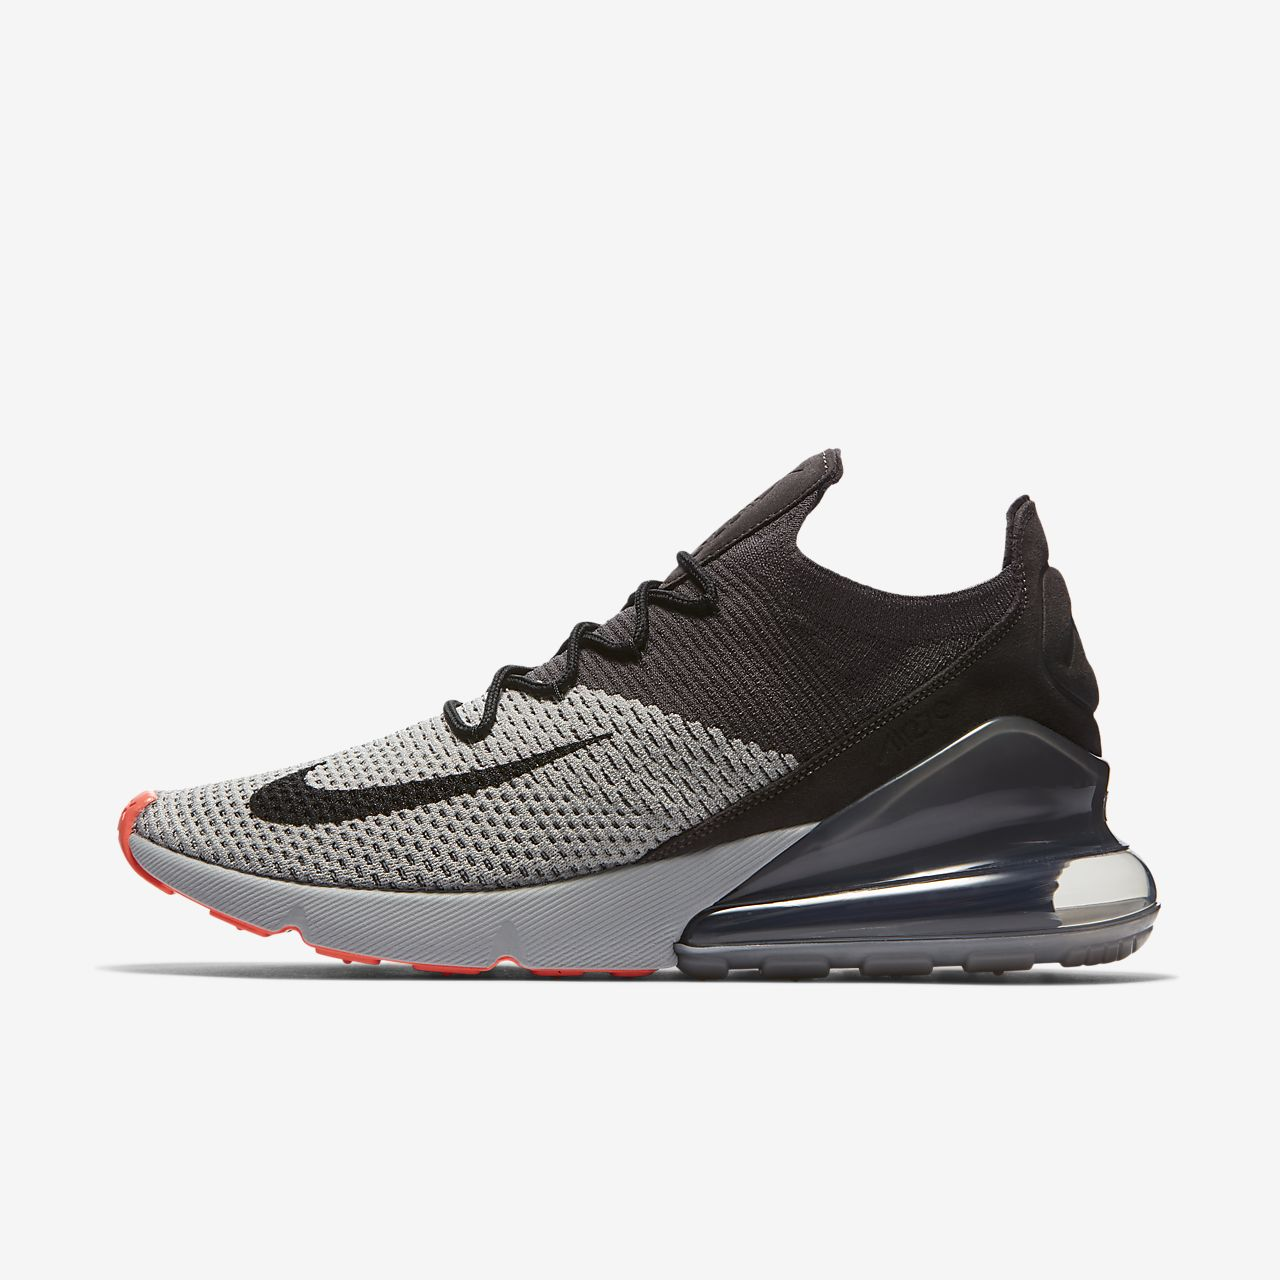 new concept 849a2 96565 ... Chaussure Nike Air Max 270 Flyknit pour Homme